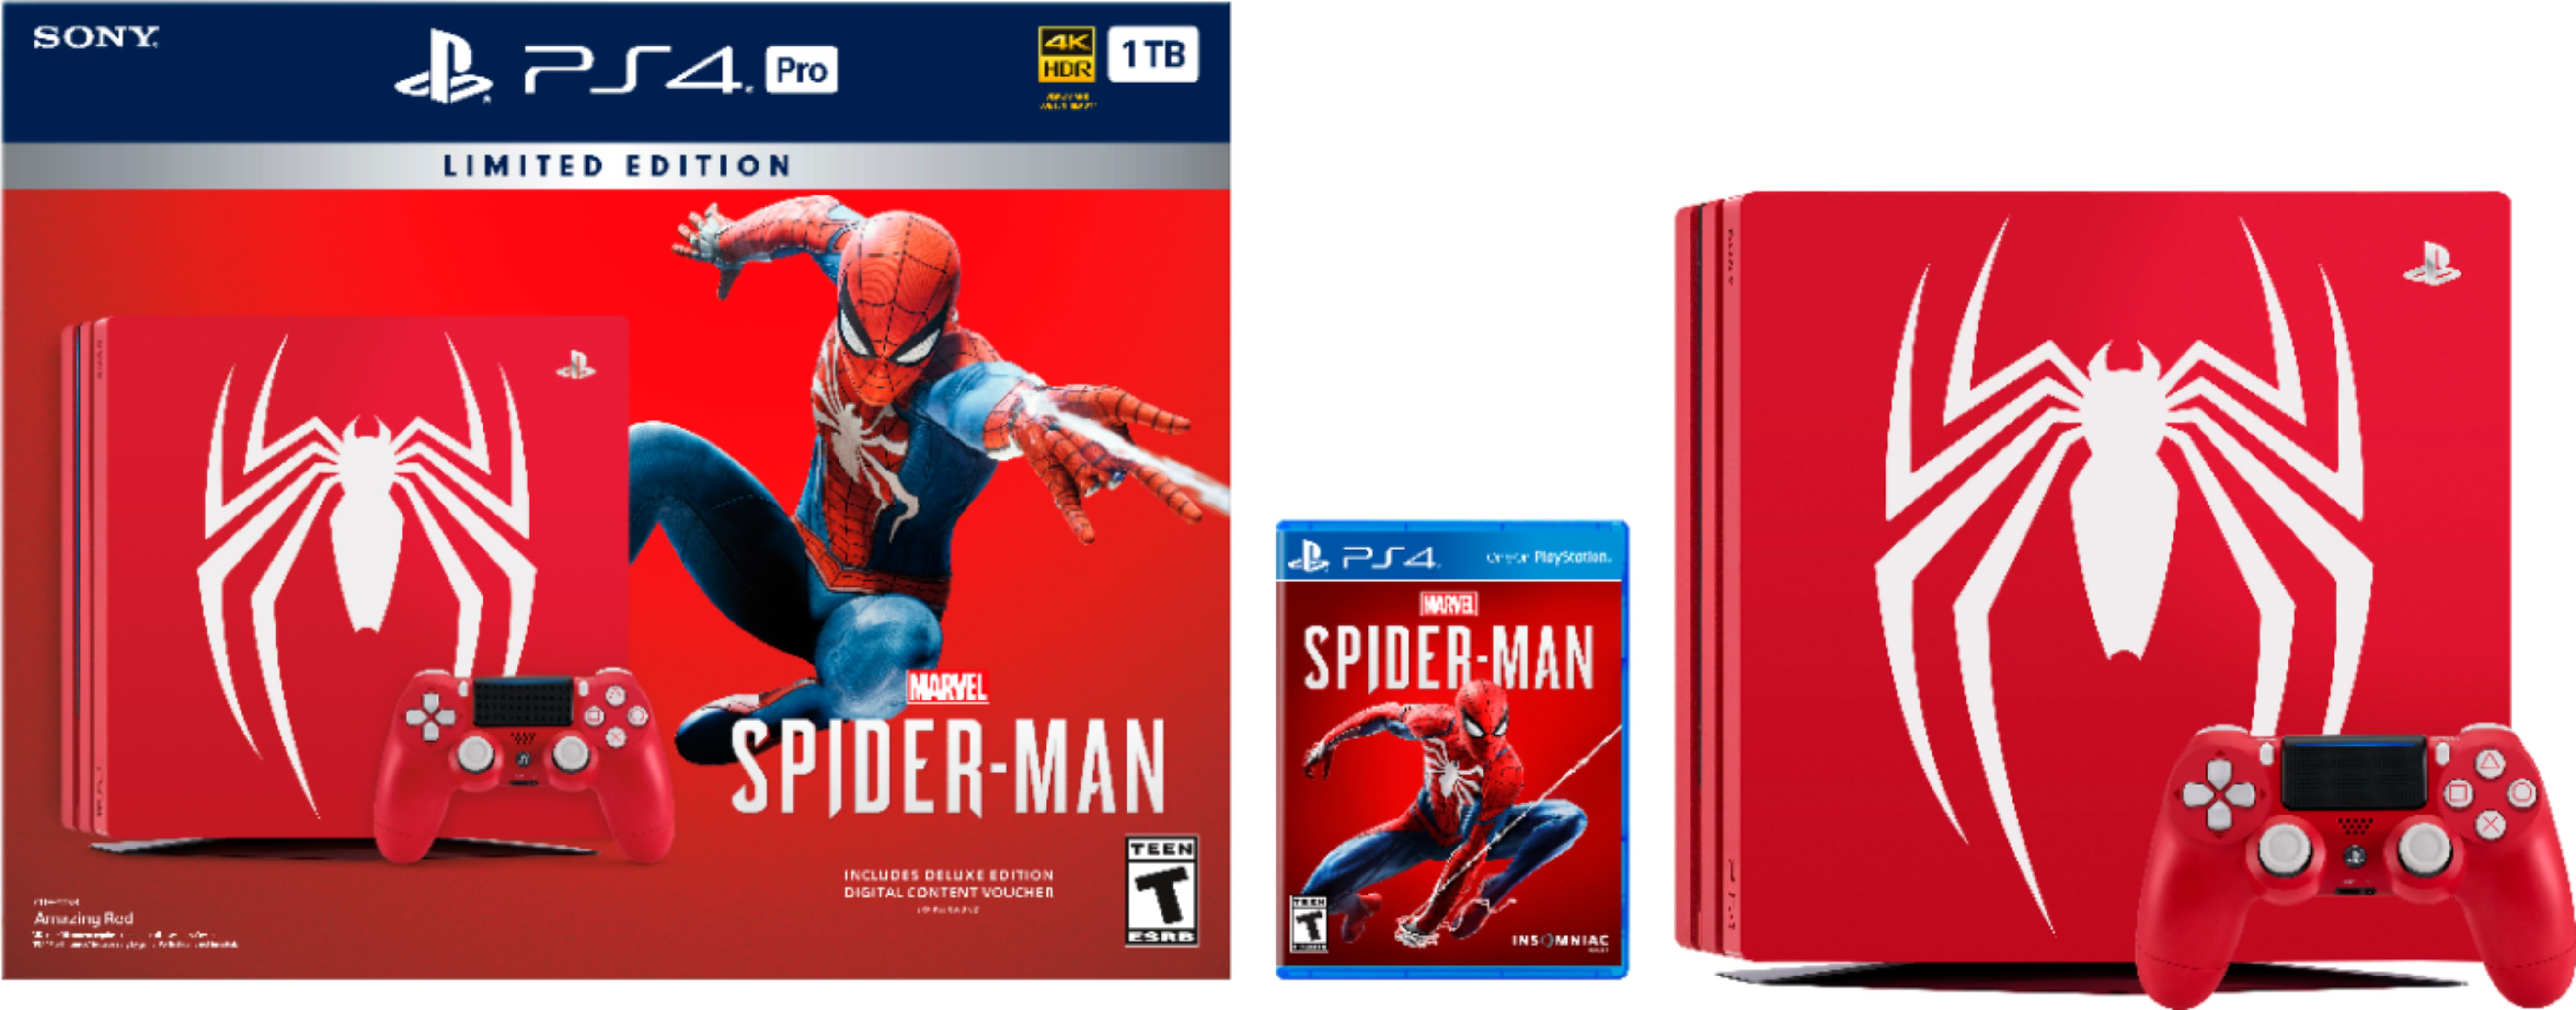 Sony PS4 Slim 1TB Spider-Man Bundle black friday 2018 hot deals